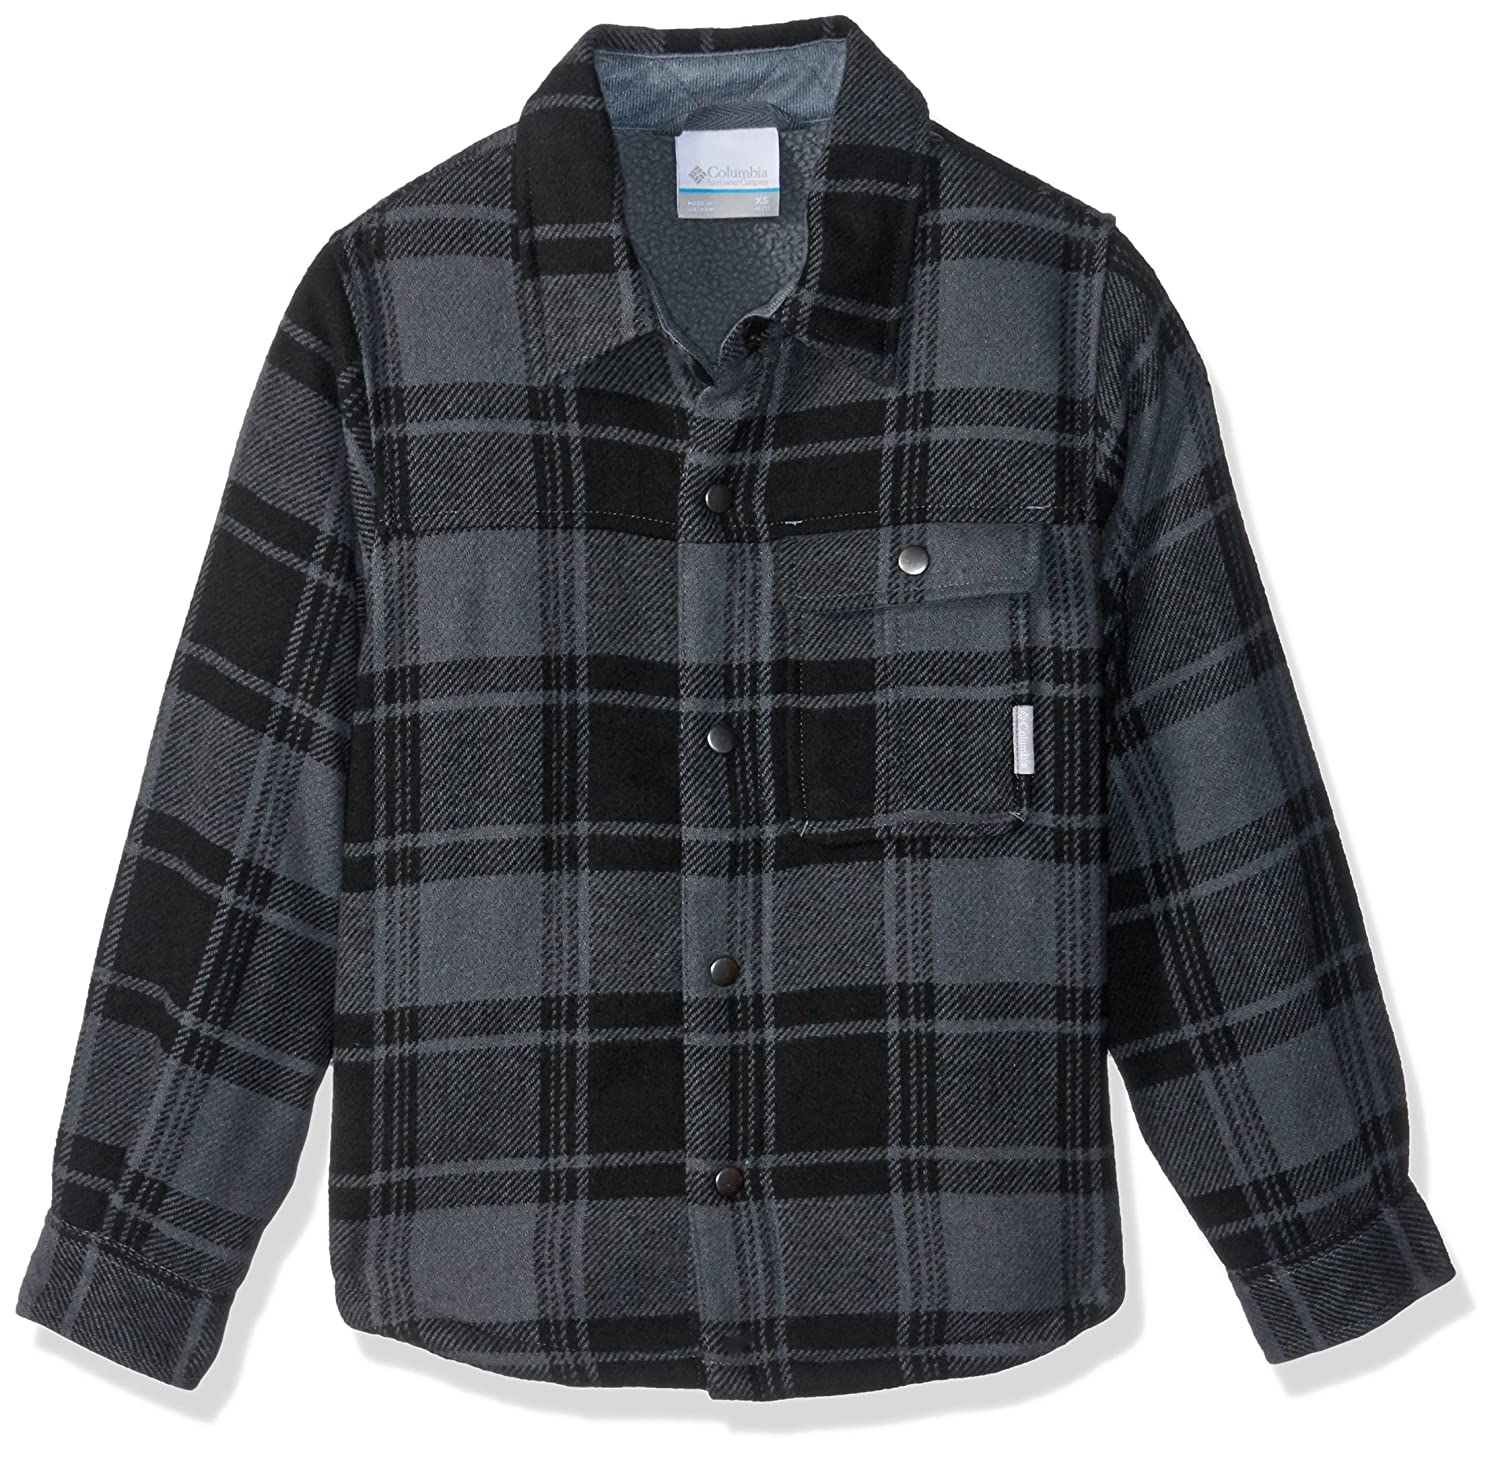 1c90945f9cd Amazon.com: Columbia Boys' Windward Shirt Jacket: Clothing